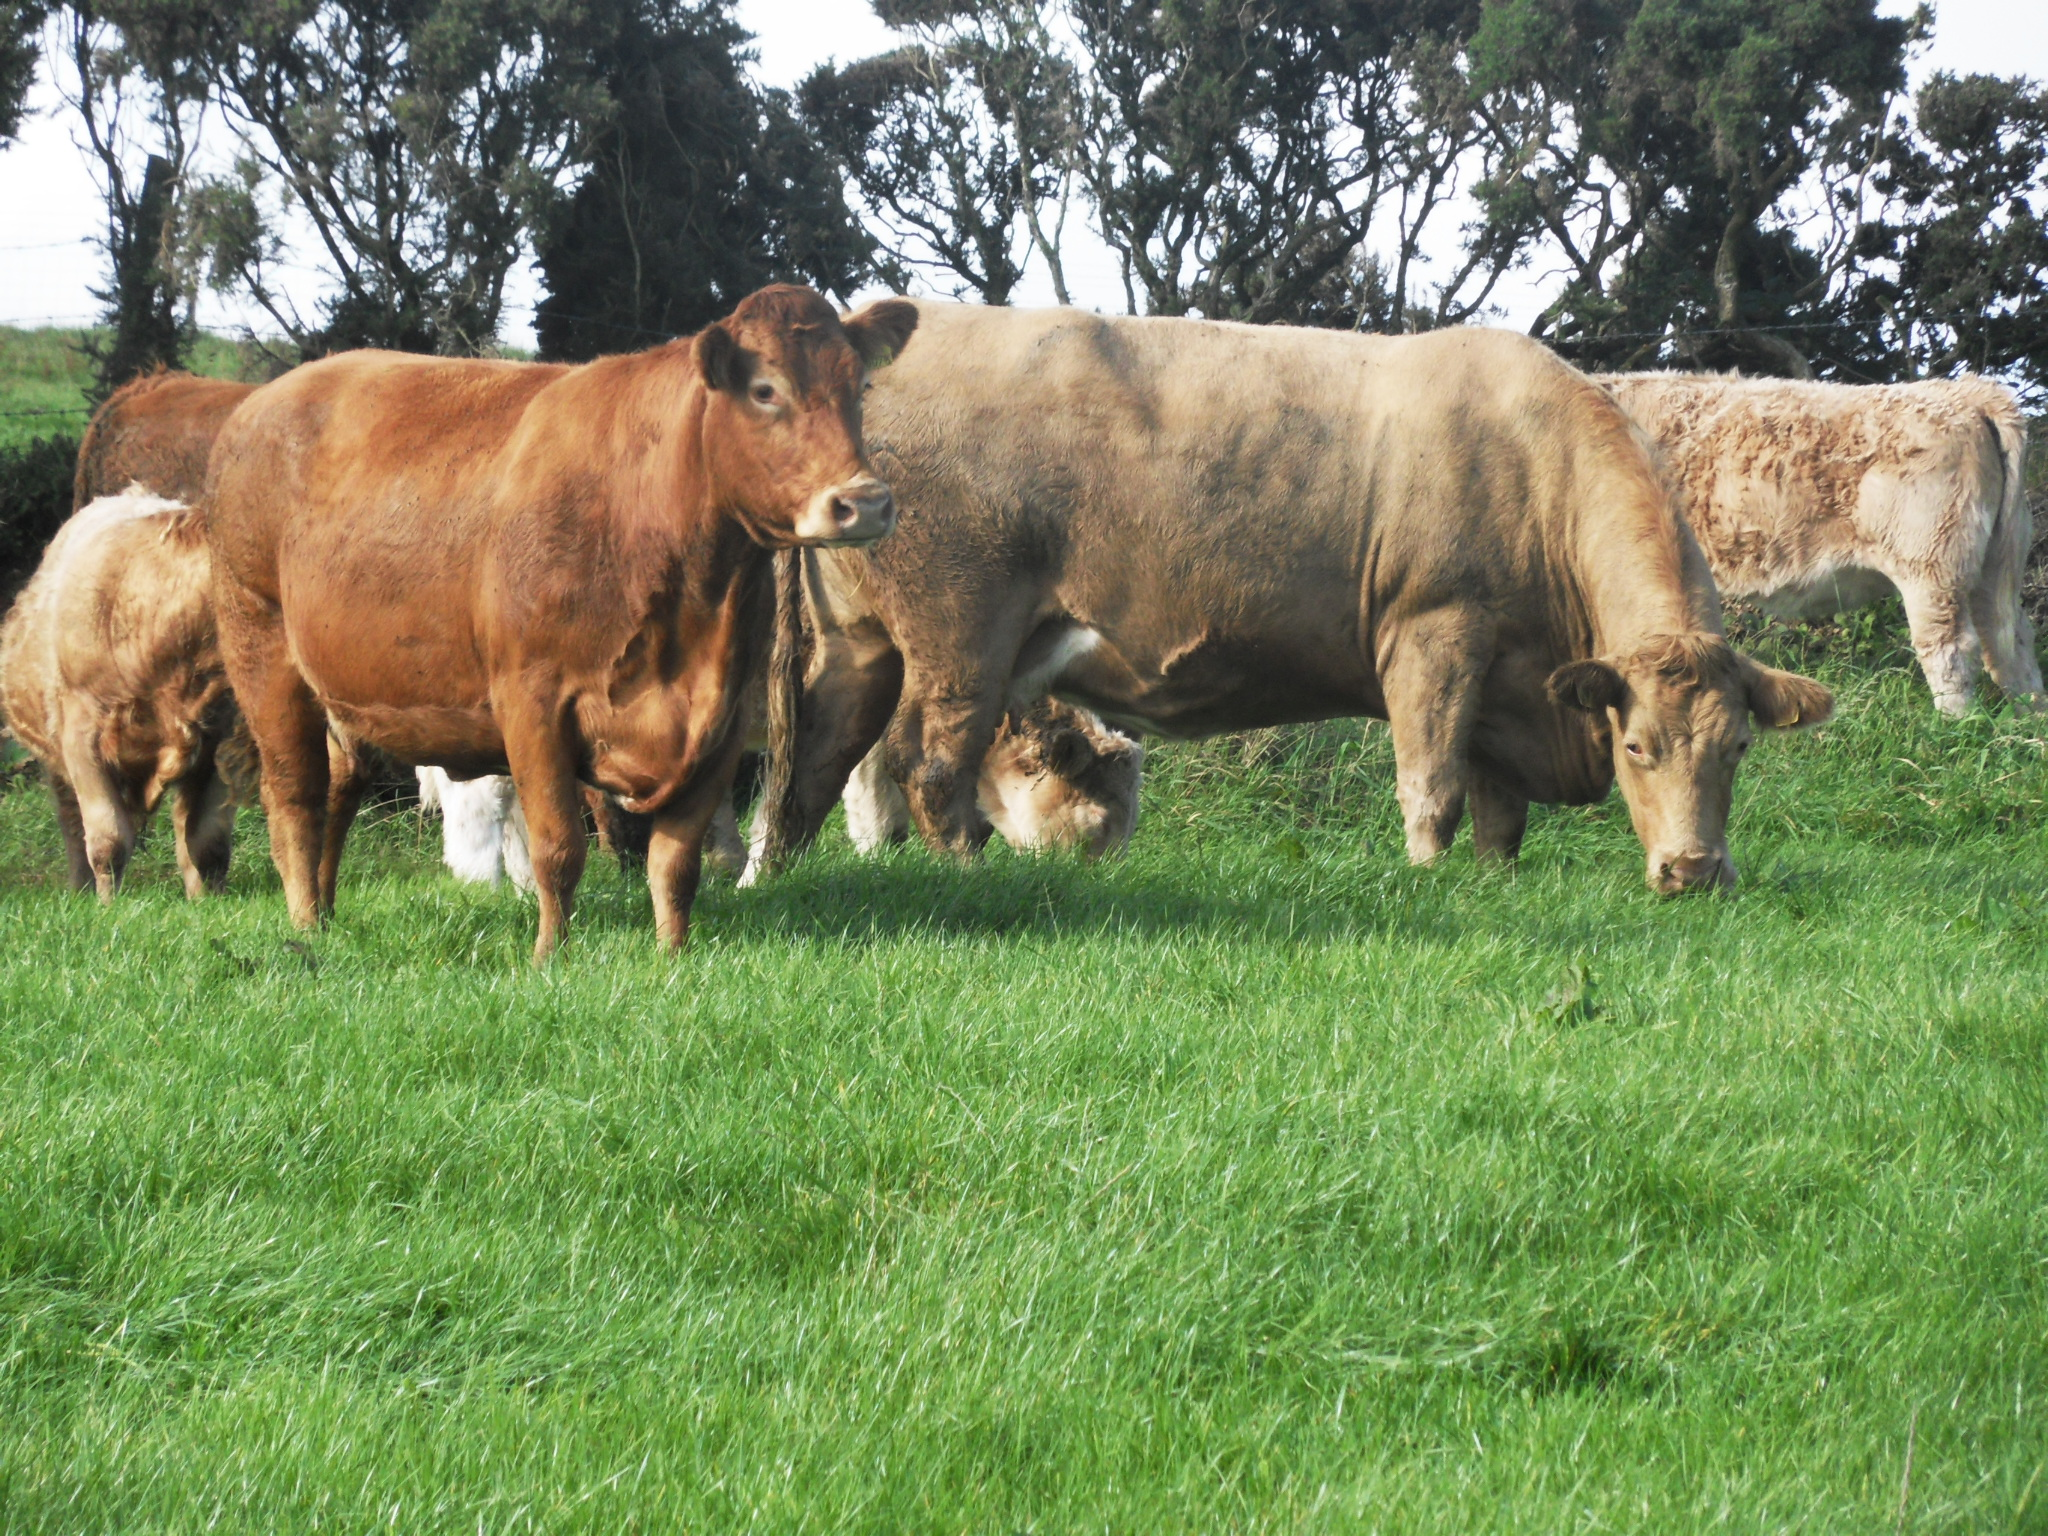 a study on twinning in cattle This article is brought to you for free and open access by the us department of  agriculture: agricultural research service, lincoln, nebraska at.